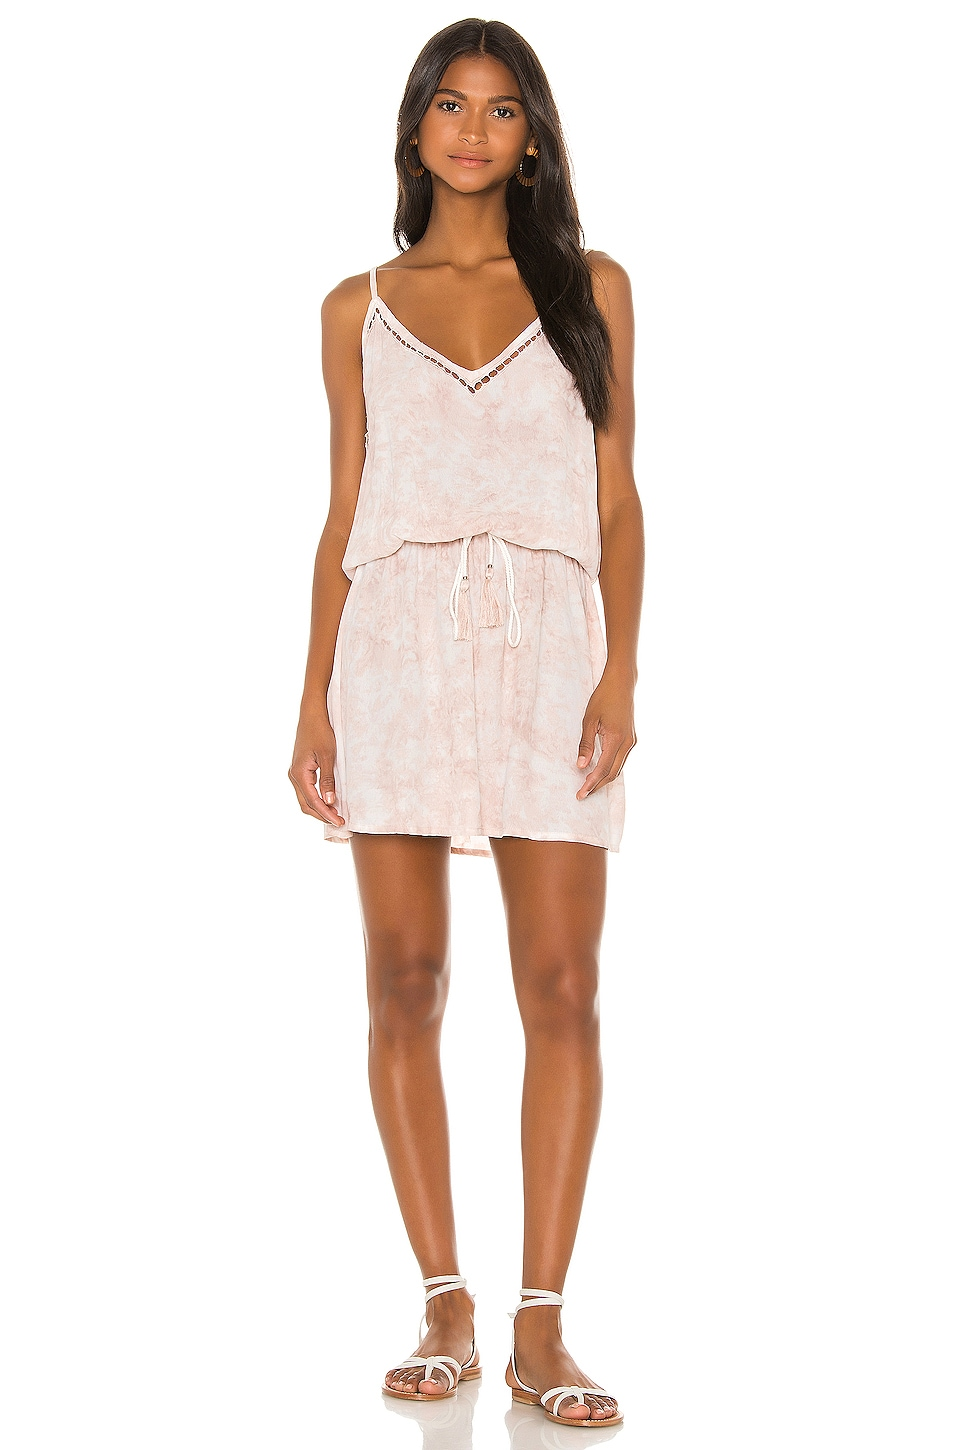 Tiare Hawaii Lana Eyelet Mini in Mauve White Smoke